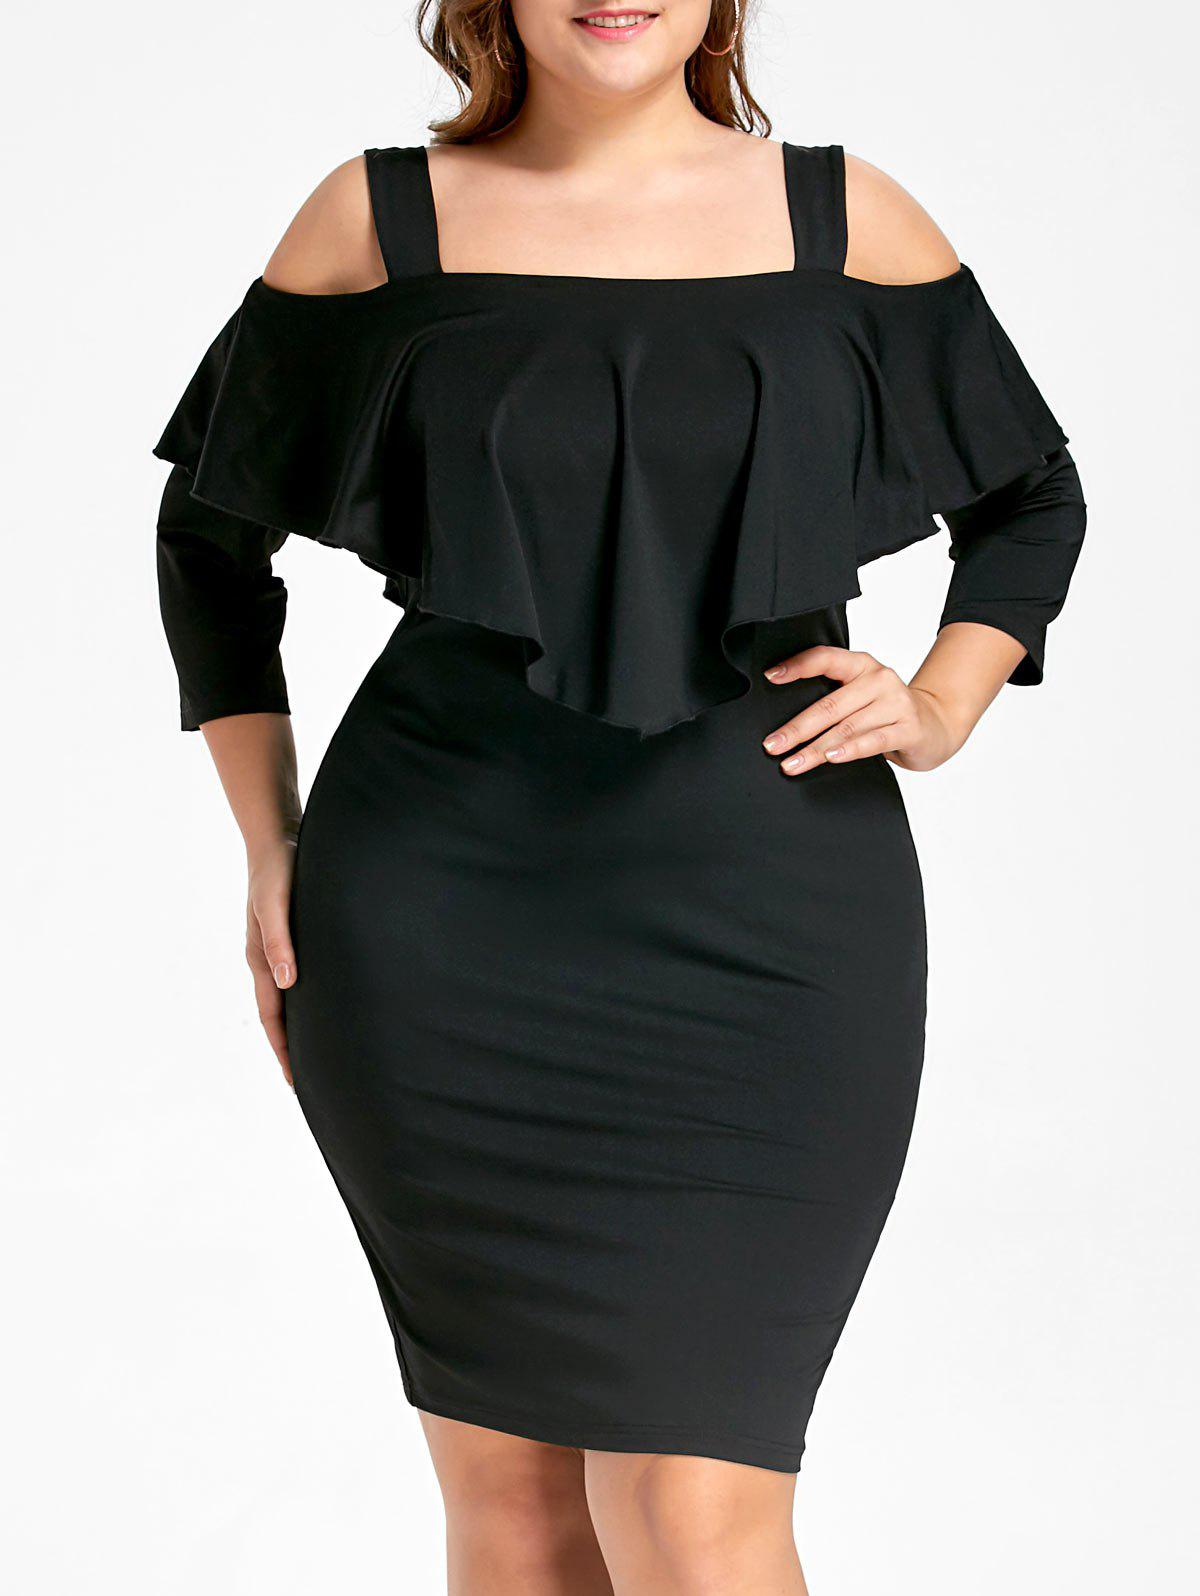 Plus Size Overlay Cold Shoulder Fitted DressWOMEN<br><br>Size: 2XL; Color: BLACK; Style: Brief; Material: Polyester; Silhouette: Sheath; Dresses Length: Knee-Length; Neckline: Square Collar; Sleeve Length: 3/4 Length Sleeves; Pattern Type: Solid Color; With Belt: No; Season: Fall,Spring; Weight: 0.3700kg; Package Contents: 1 x Dress;